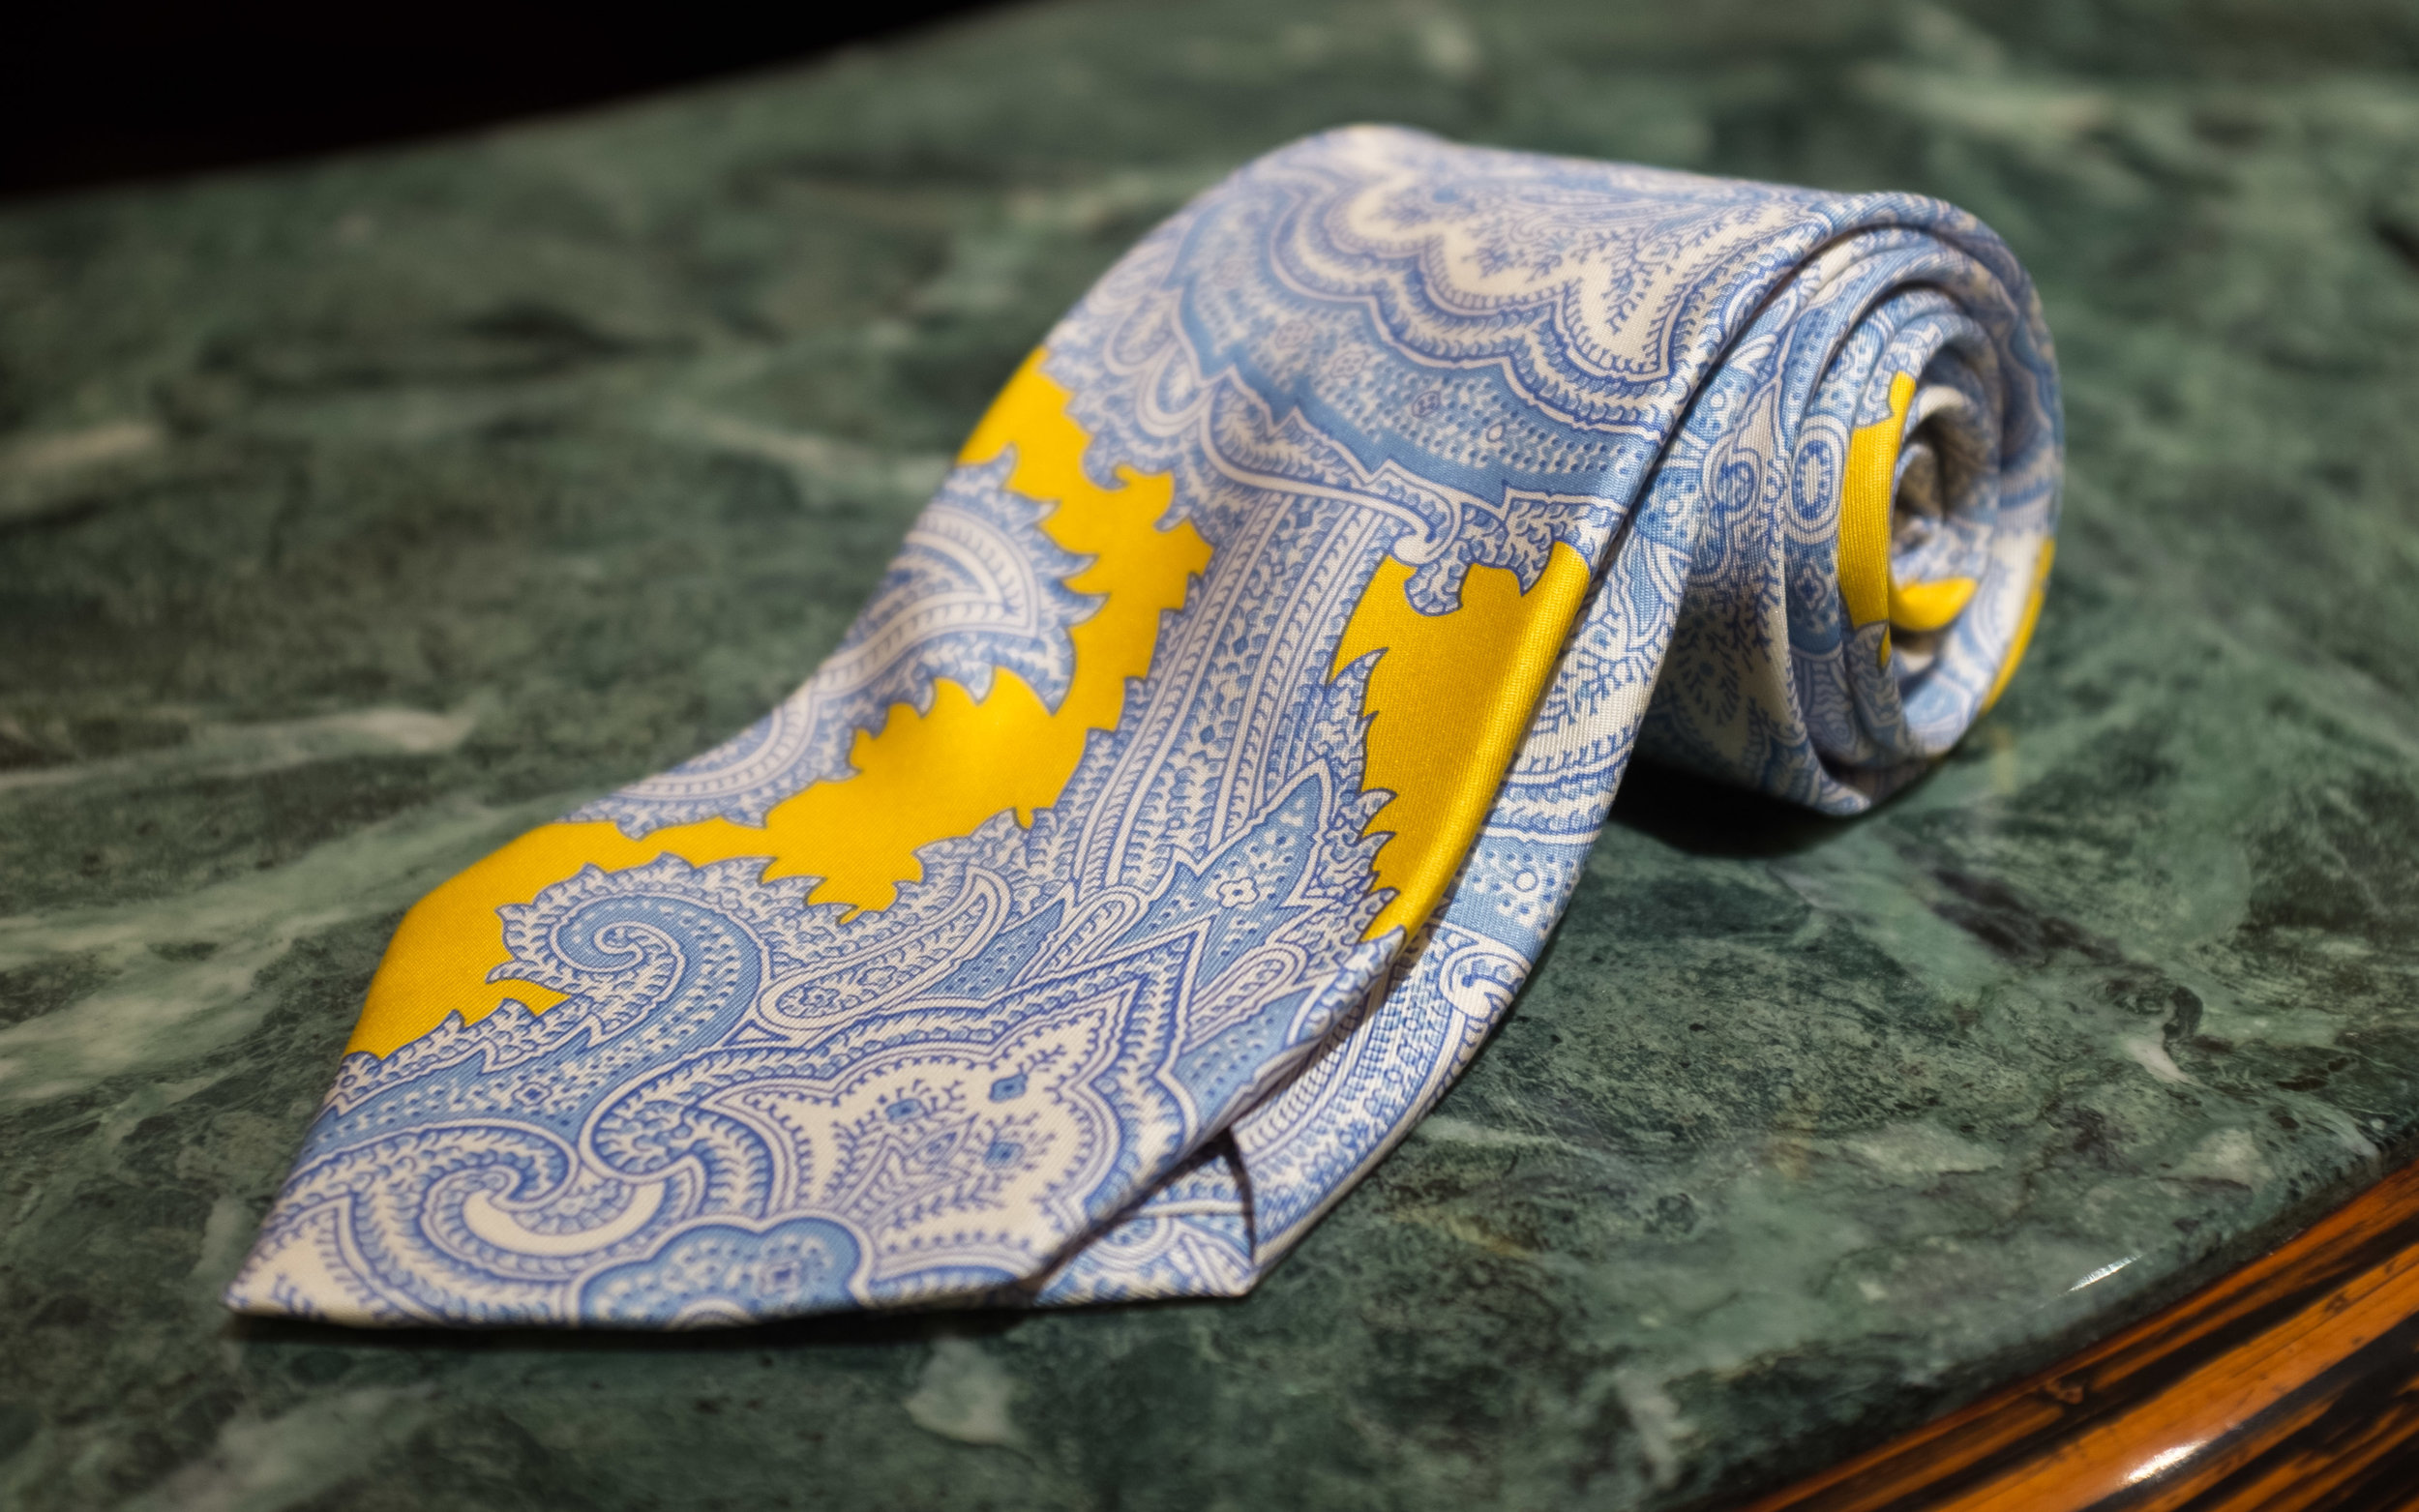 Oversize Printed Silk Paisley  - Cut from a scarf-scale patterned silk, this blown up paisley affords the savvy a light hearted, blazer-with-khakis, lawn-party chic.